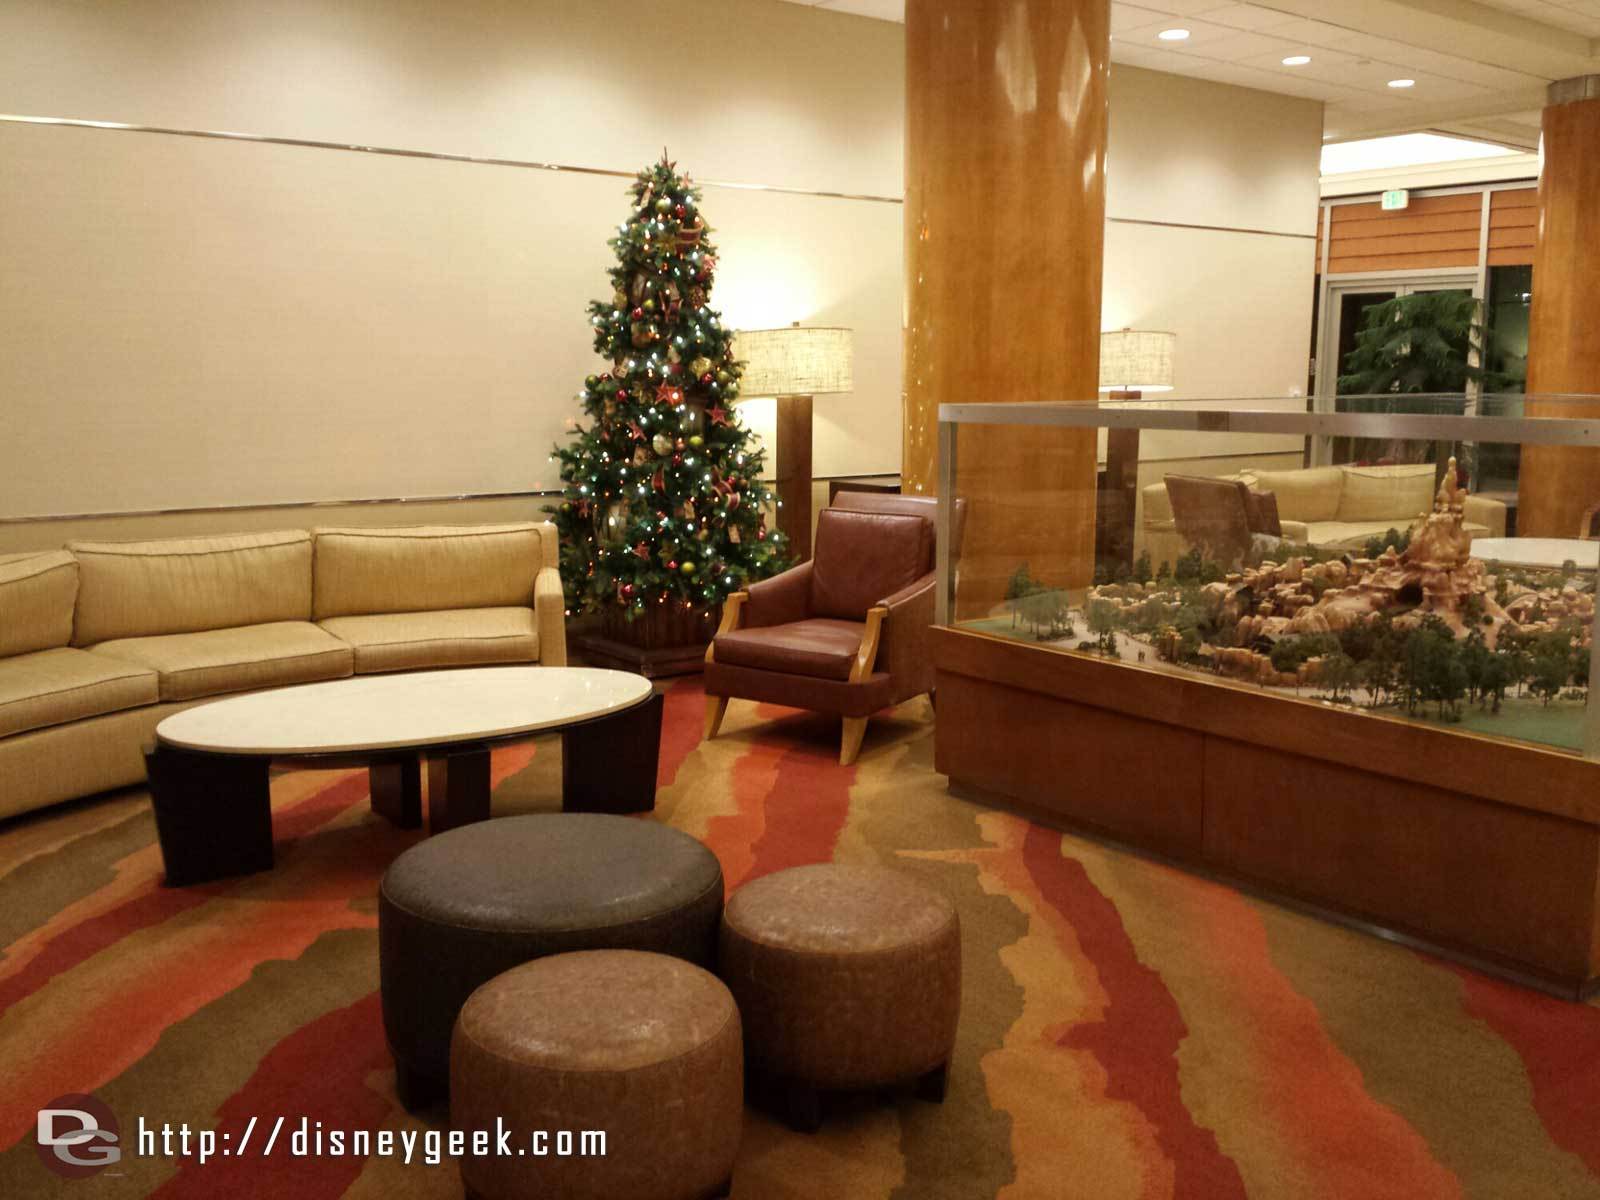 One of the trees in the #Disneyland Hotel Frontier Tower lobby